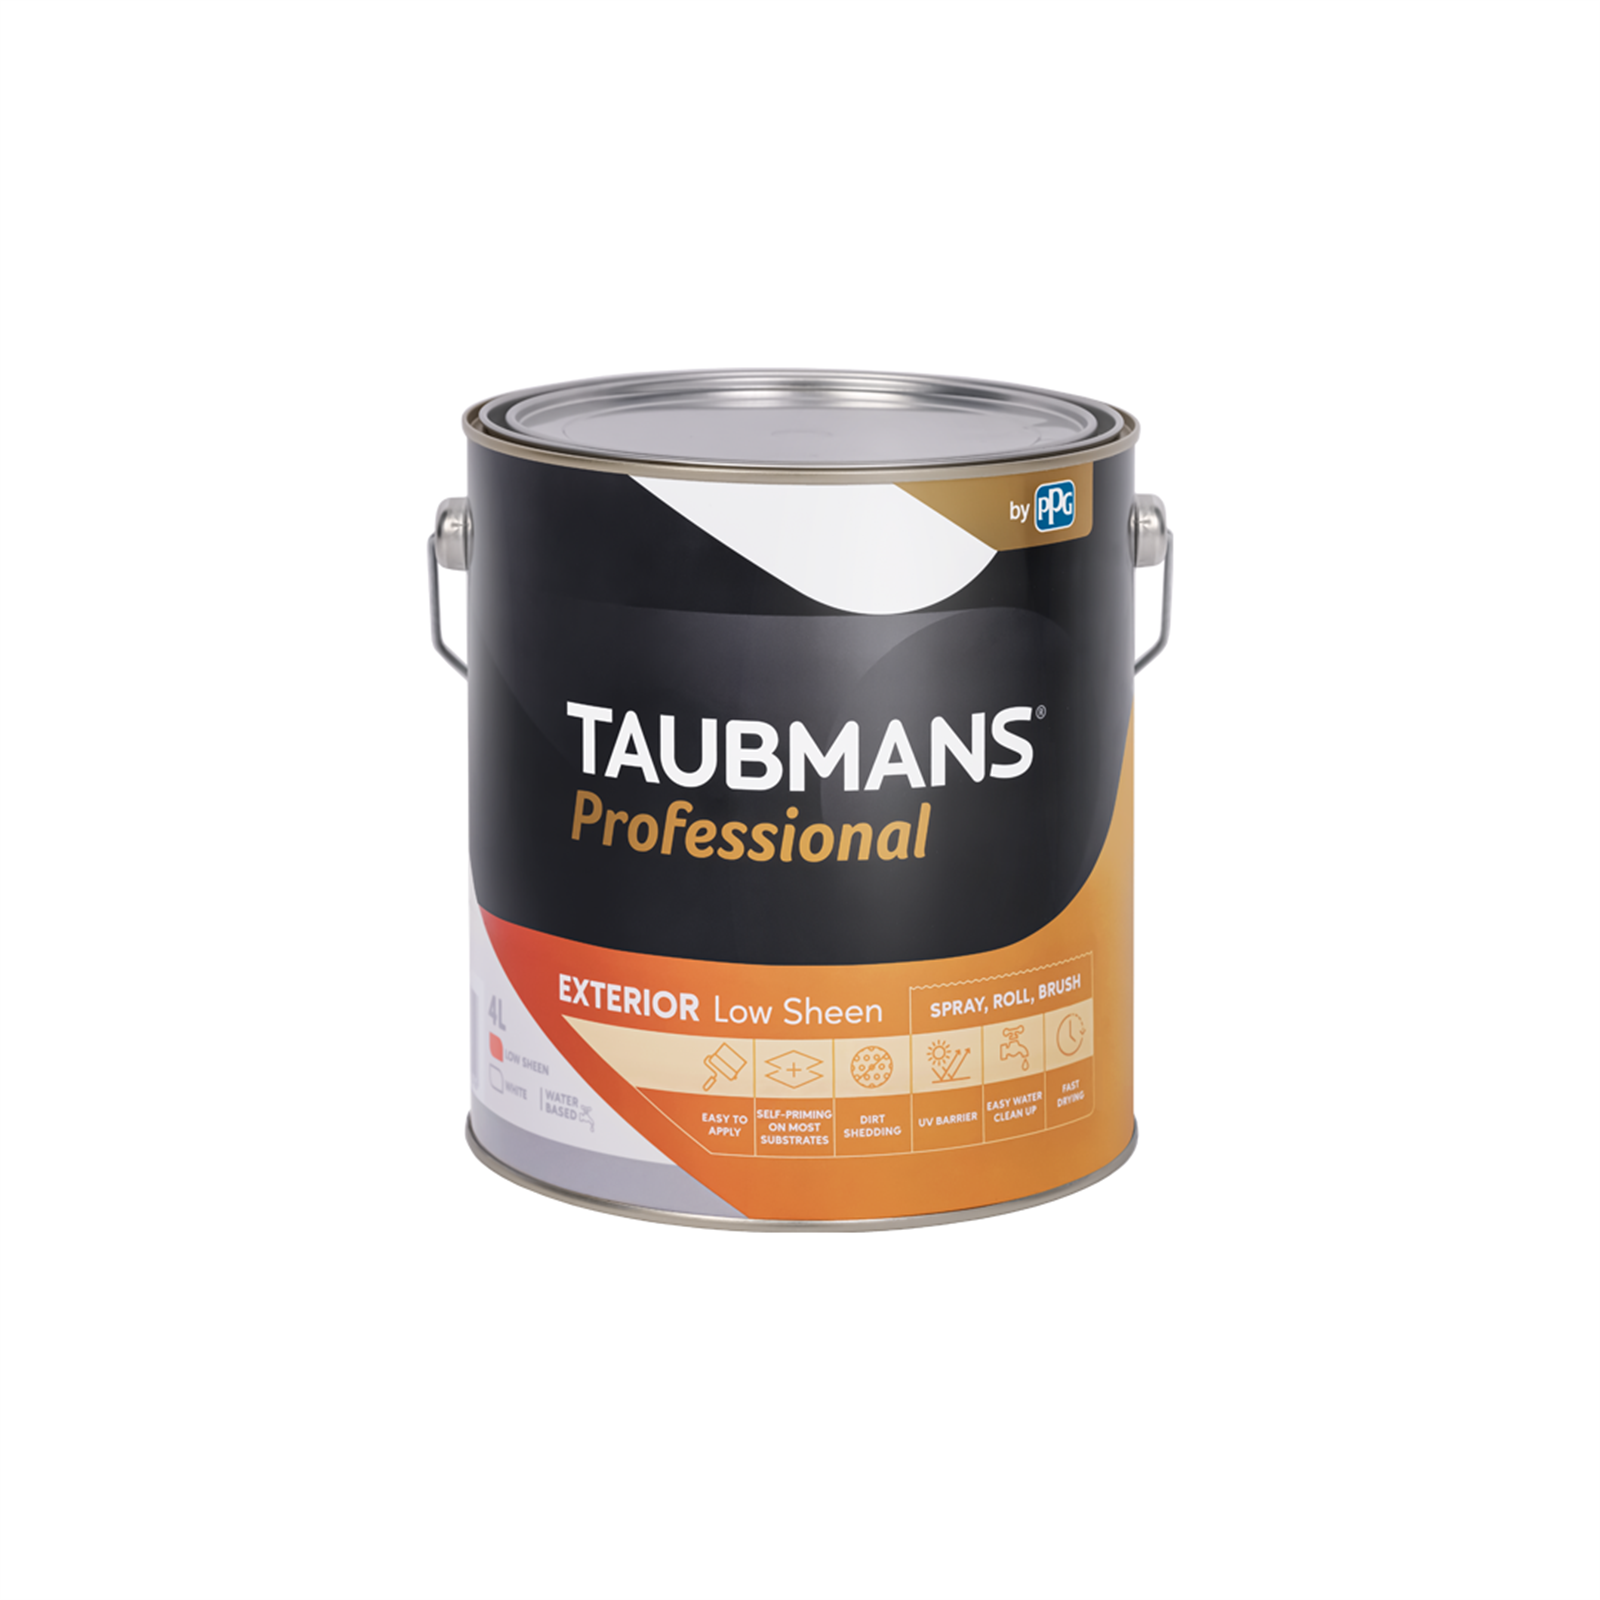 Taubmans Professional White Low Sheen Exterior Paint